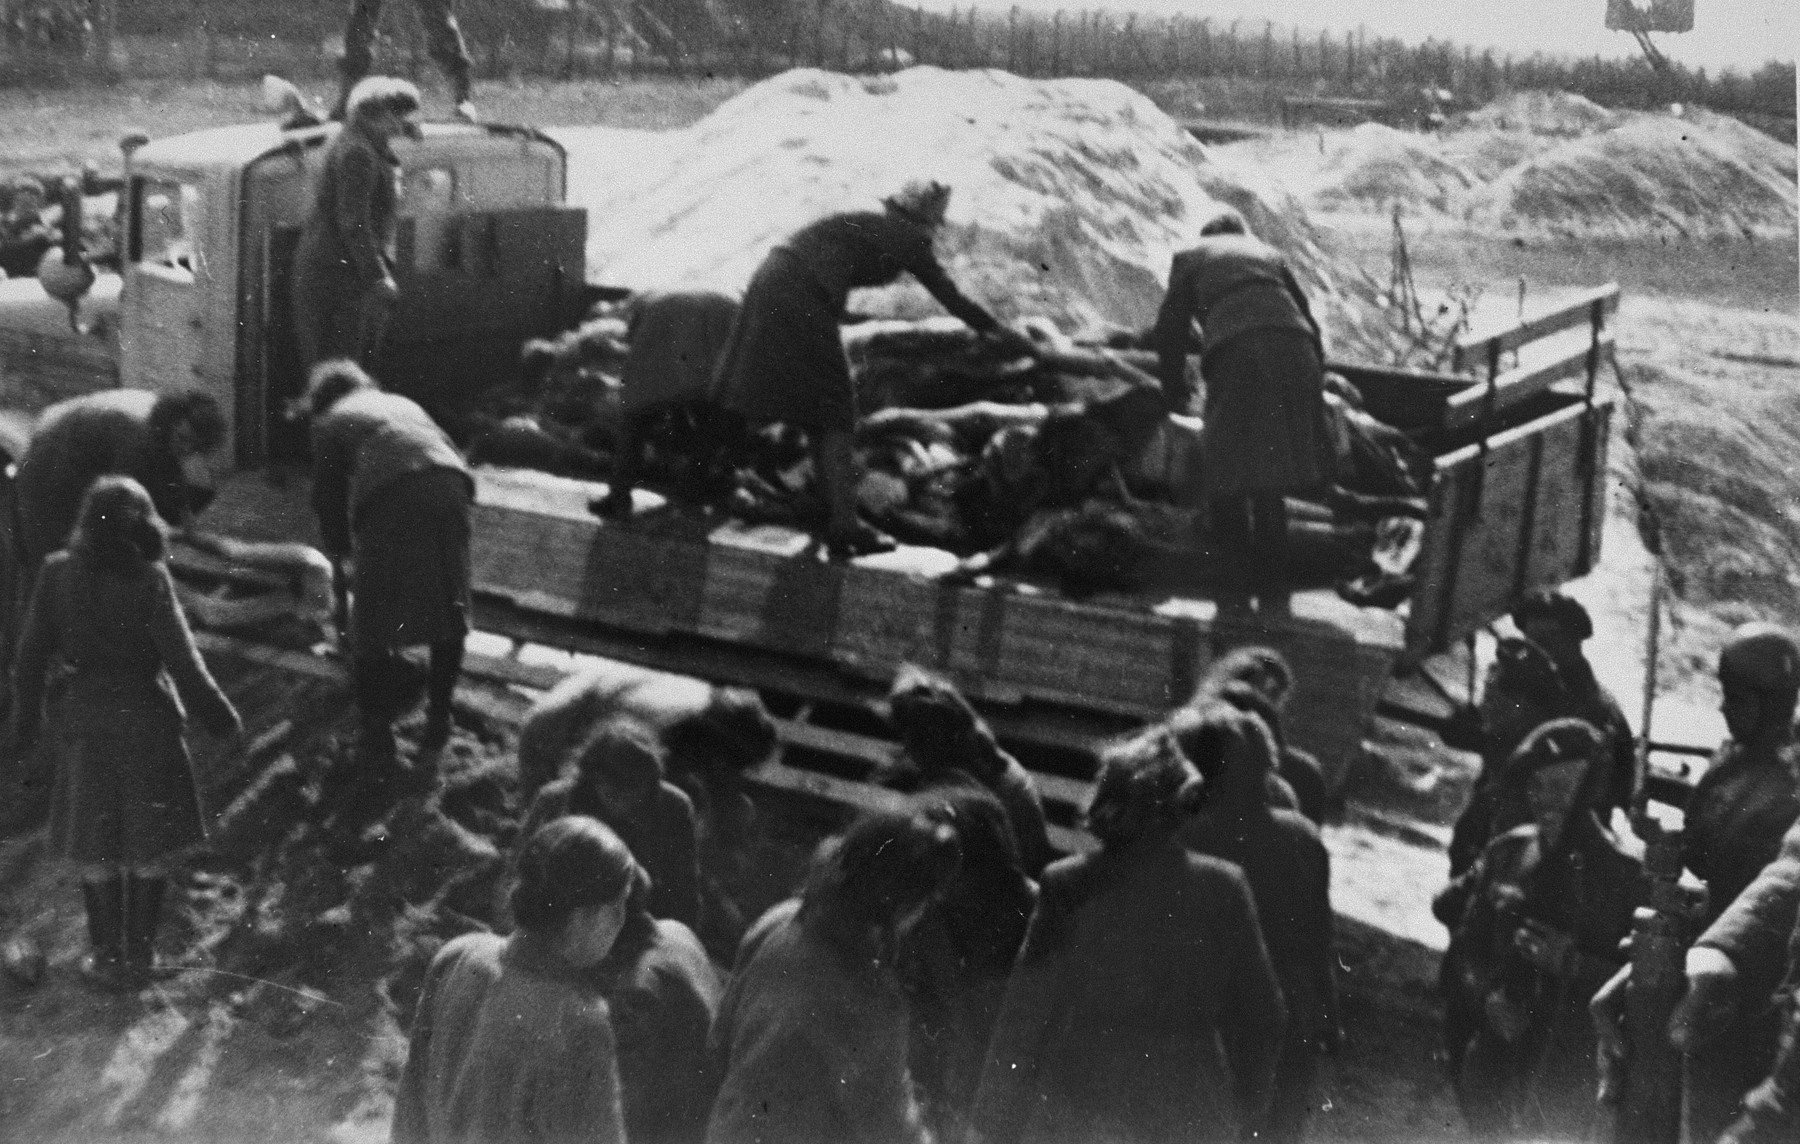 Former camp personnel unload a truckload of corpses into a mass grave.